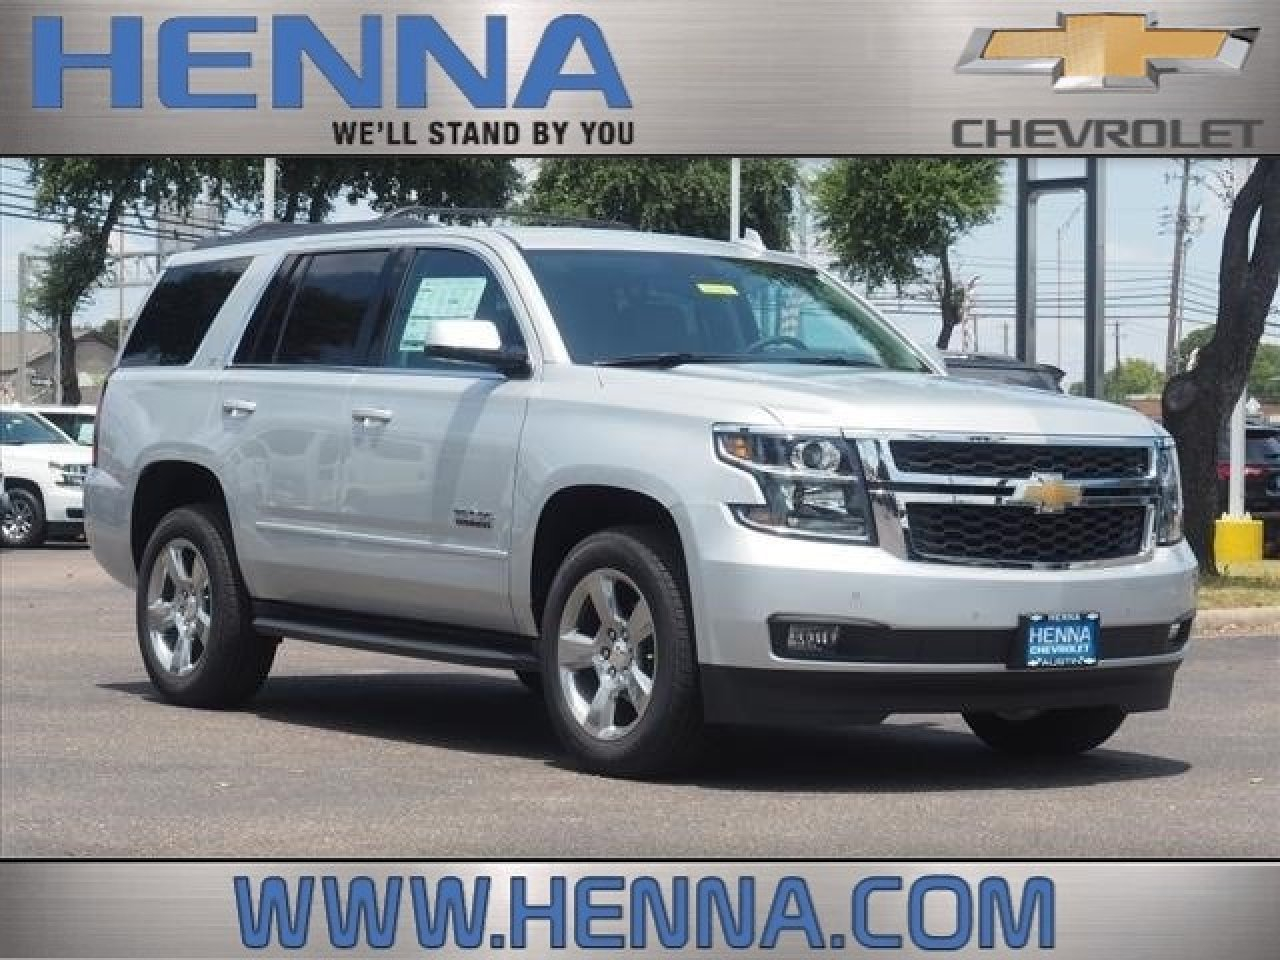 2020 Chevrolet Tahoe Lt 1Gnscbkc5Lr138501   Henna Chevrolet Is A 2021 Chevy Traverse Flat Towable Cost, Battery Location, Bumper